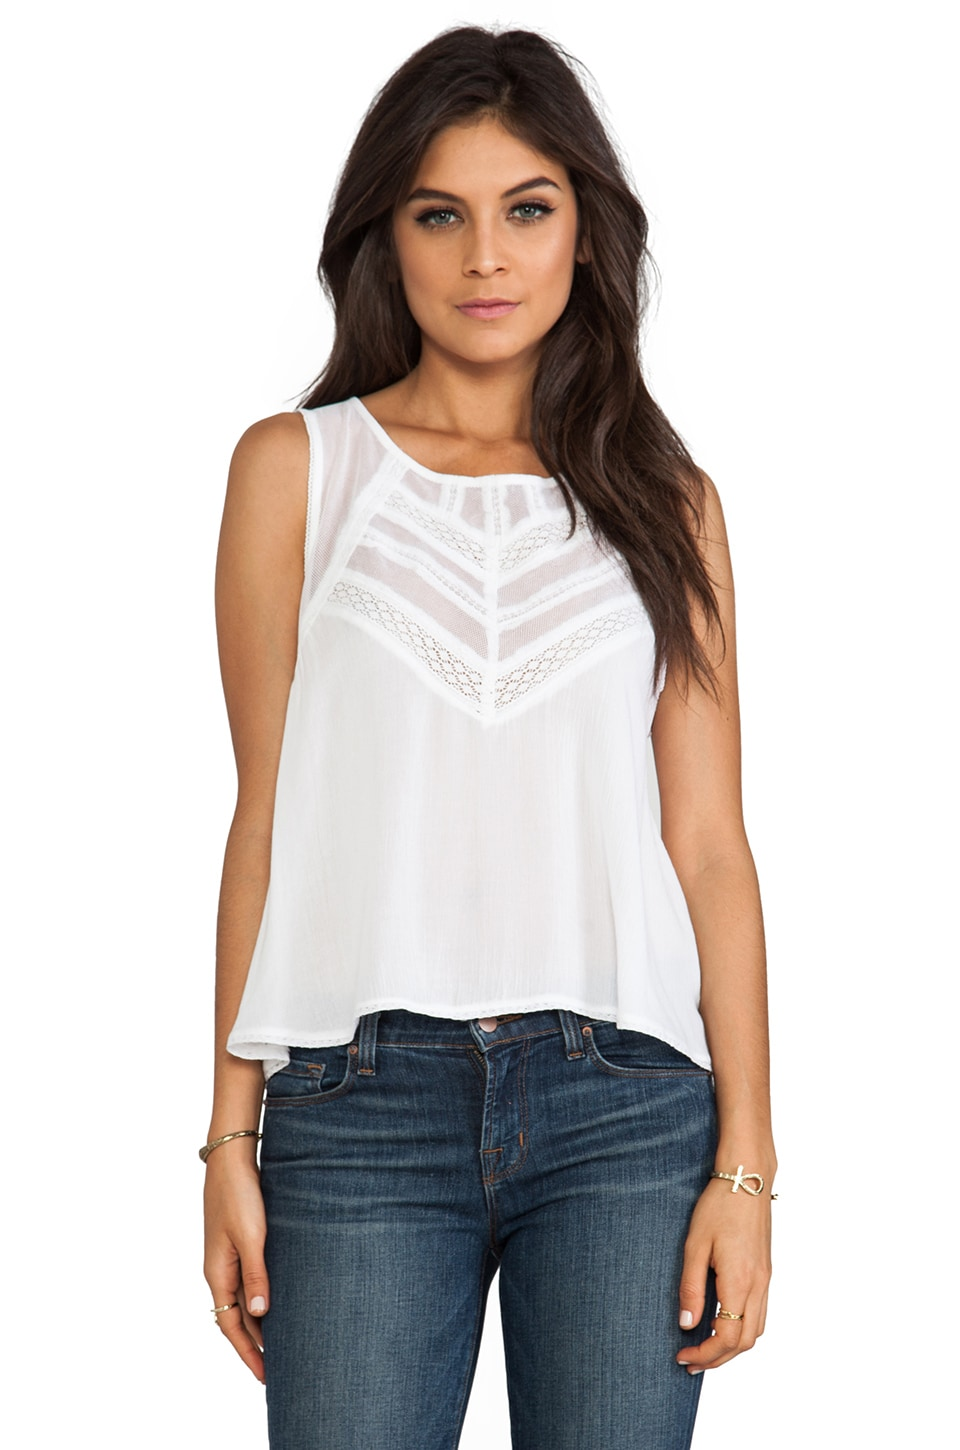 Free People Shellshock Top in White